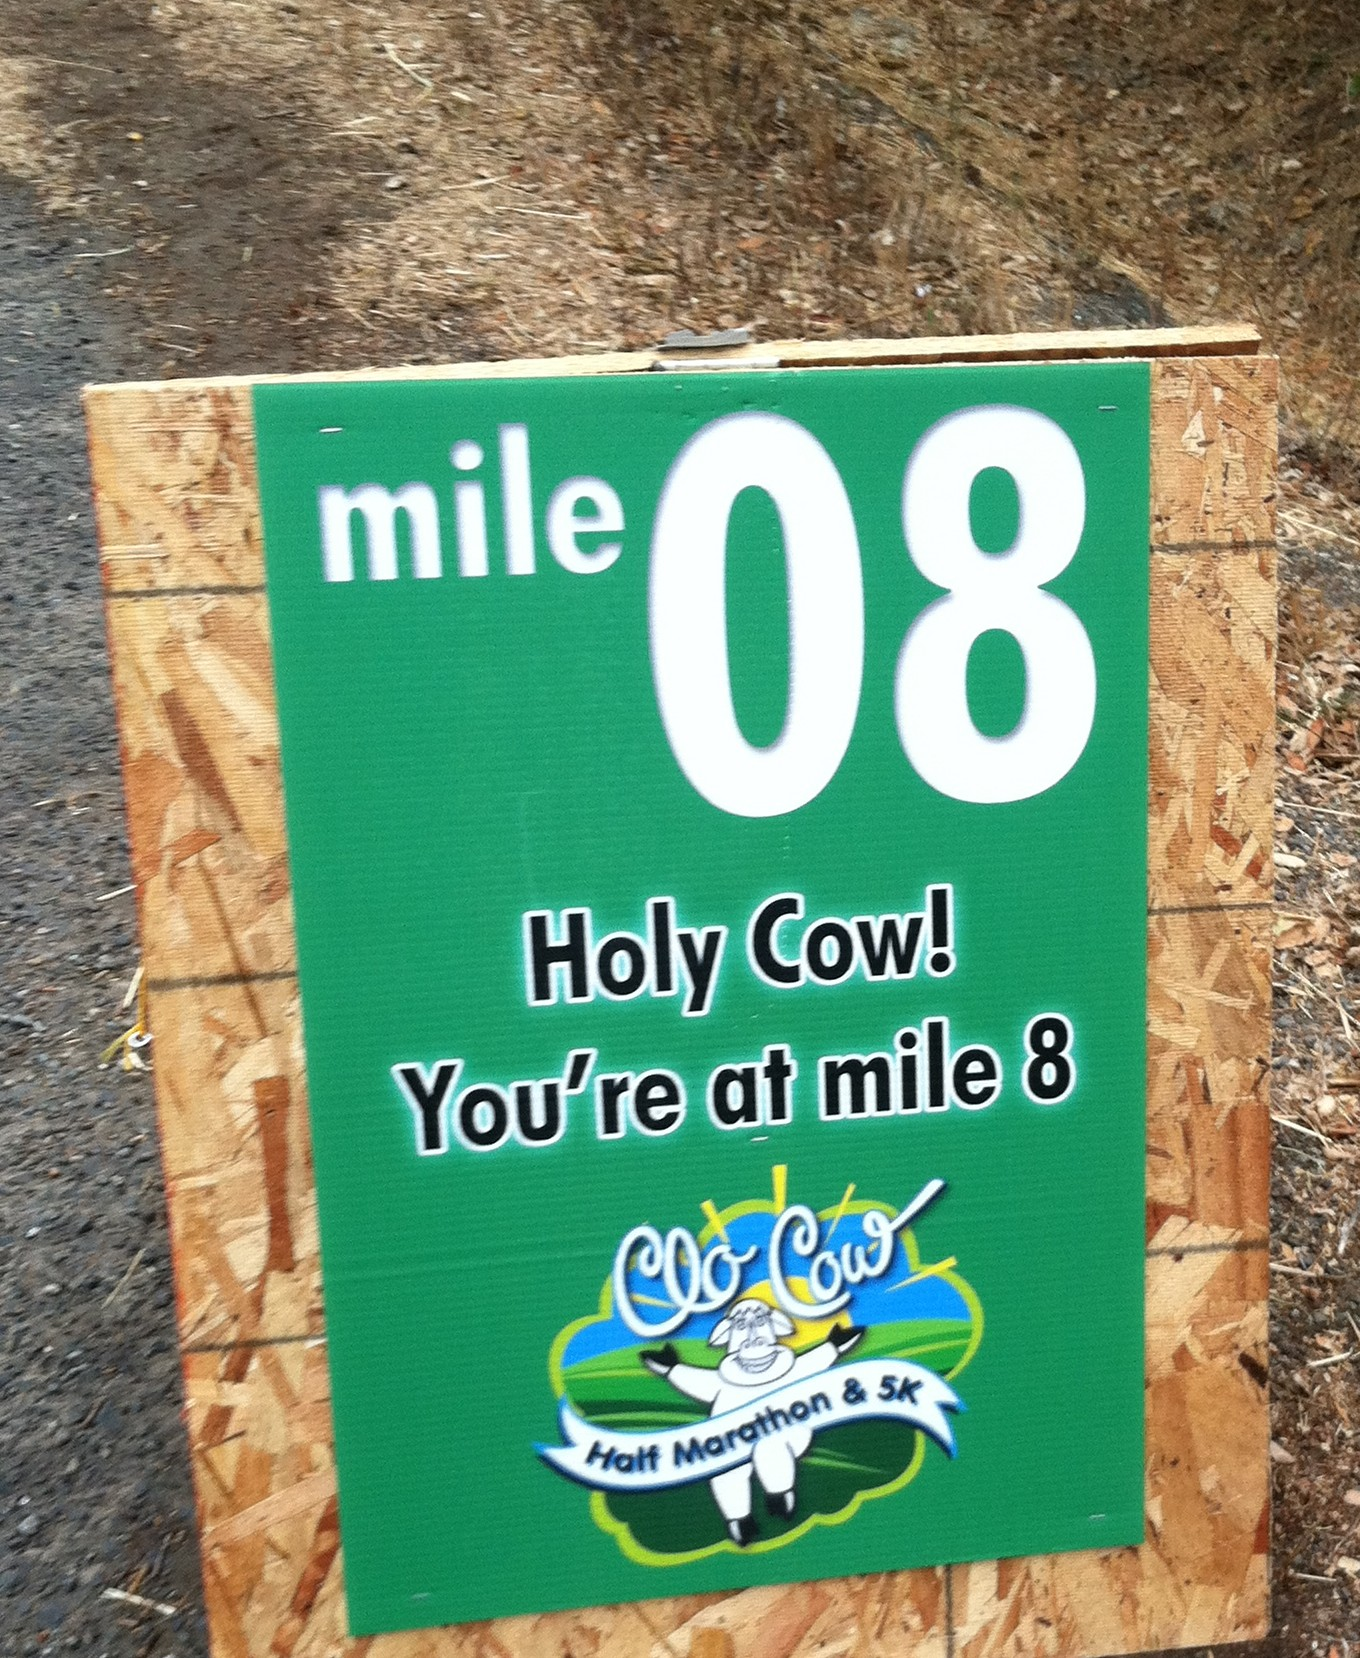 """Holy Cow! You're at Mile Marker 08"" - encouraging mile marker at the Petaluma Clo-Cow Half Marathon 2012"